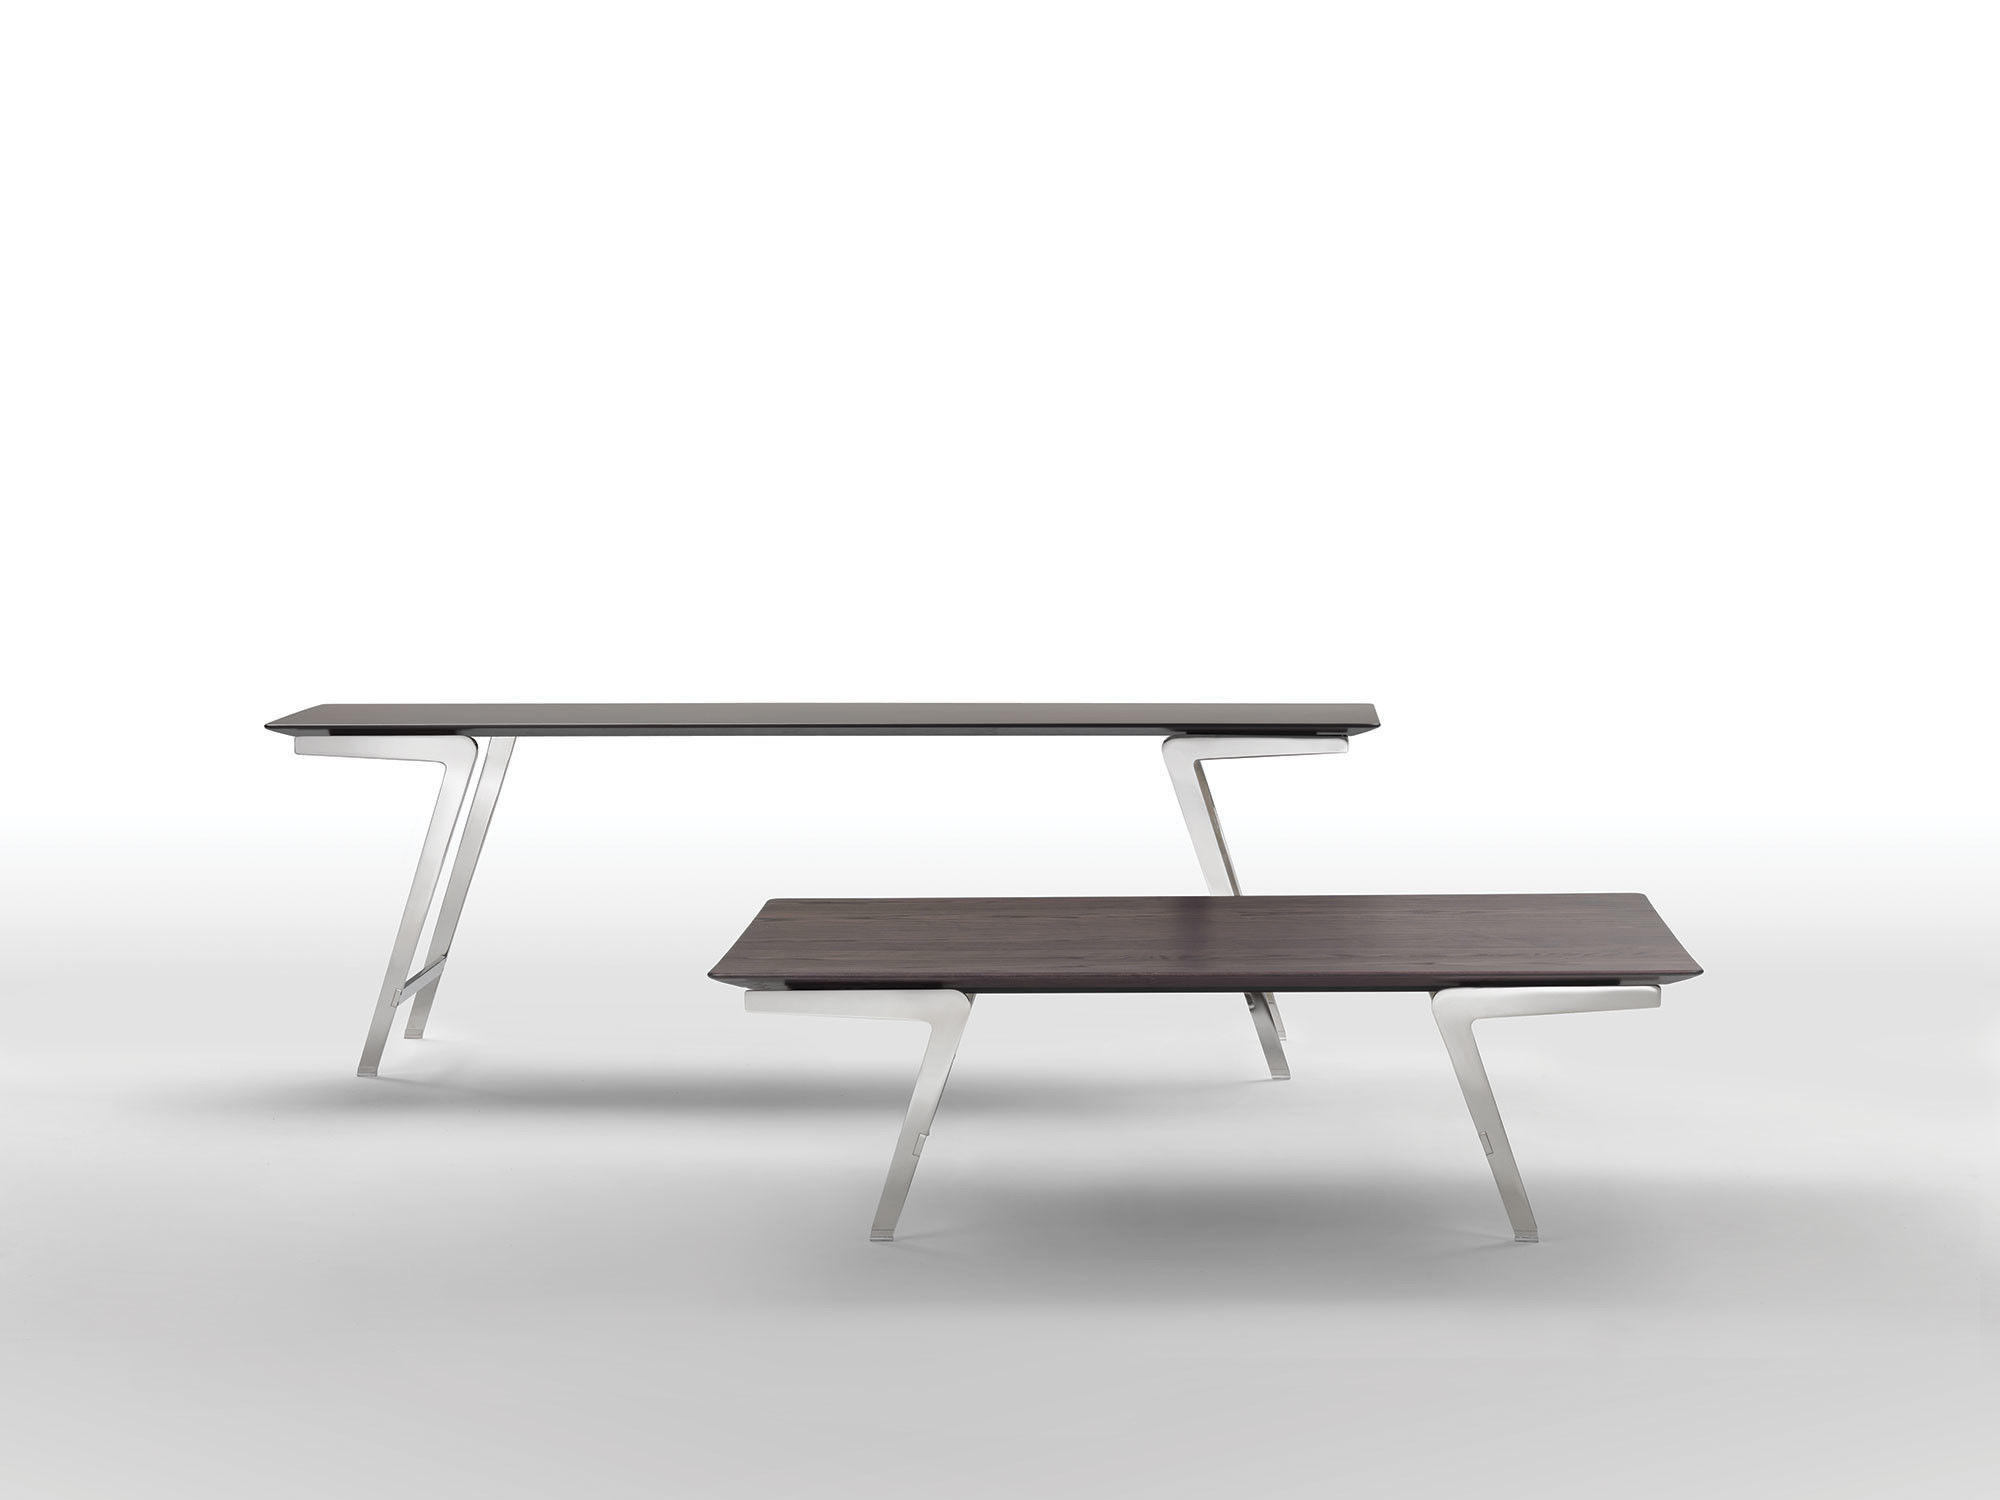 contemporary table  metal  marble  solid wood  soffio  flexform -  contemporary table  metal  marble  solid wood soffio flexform